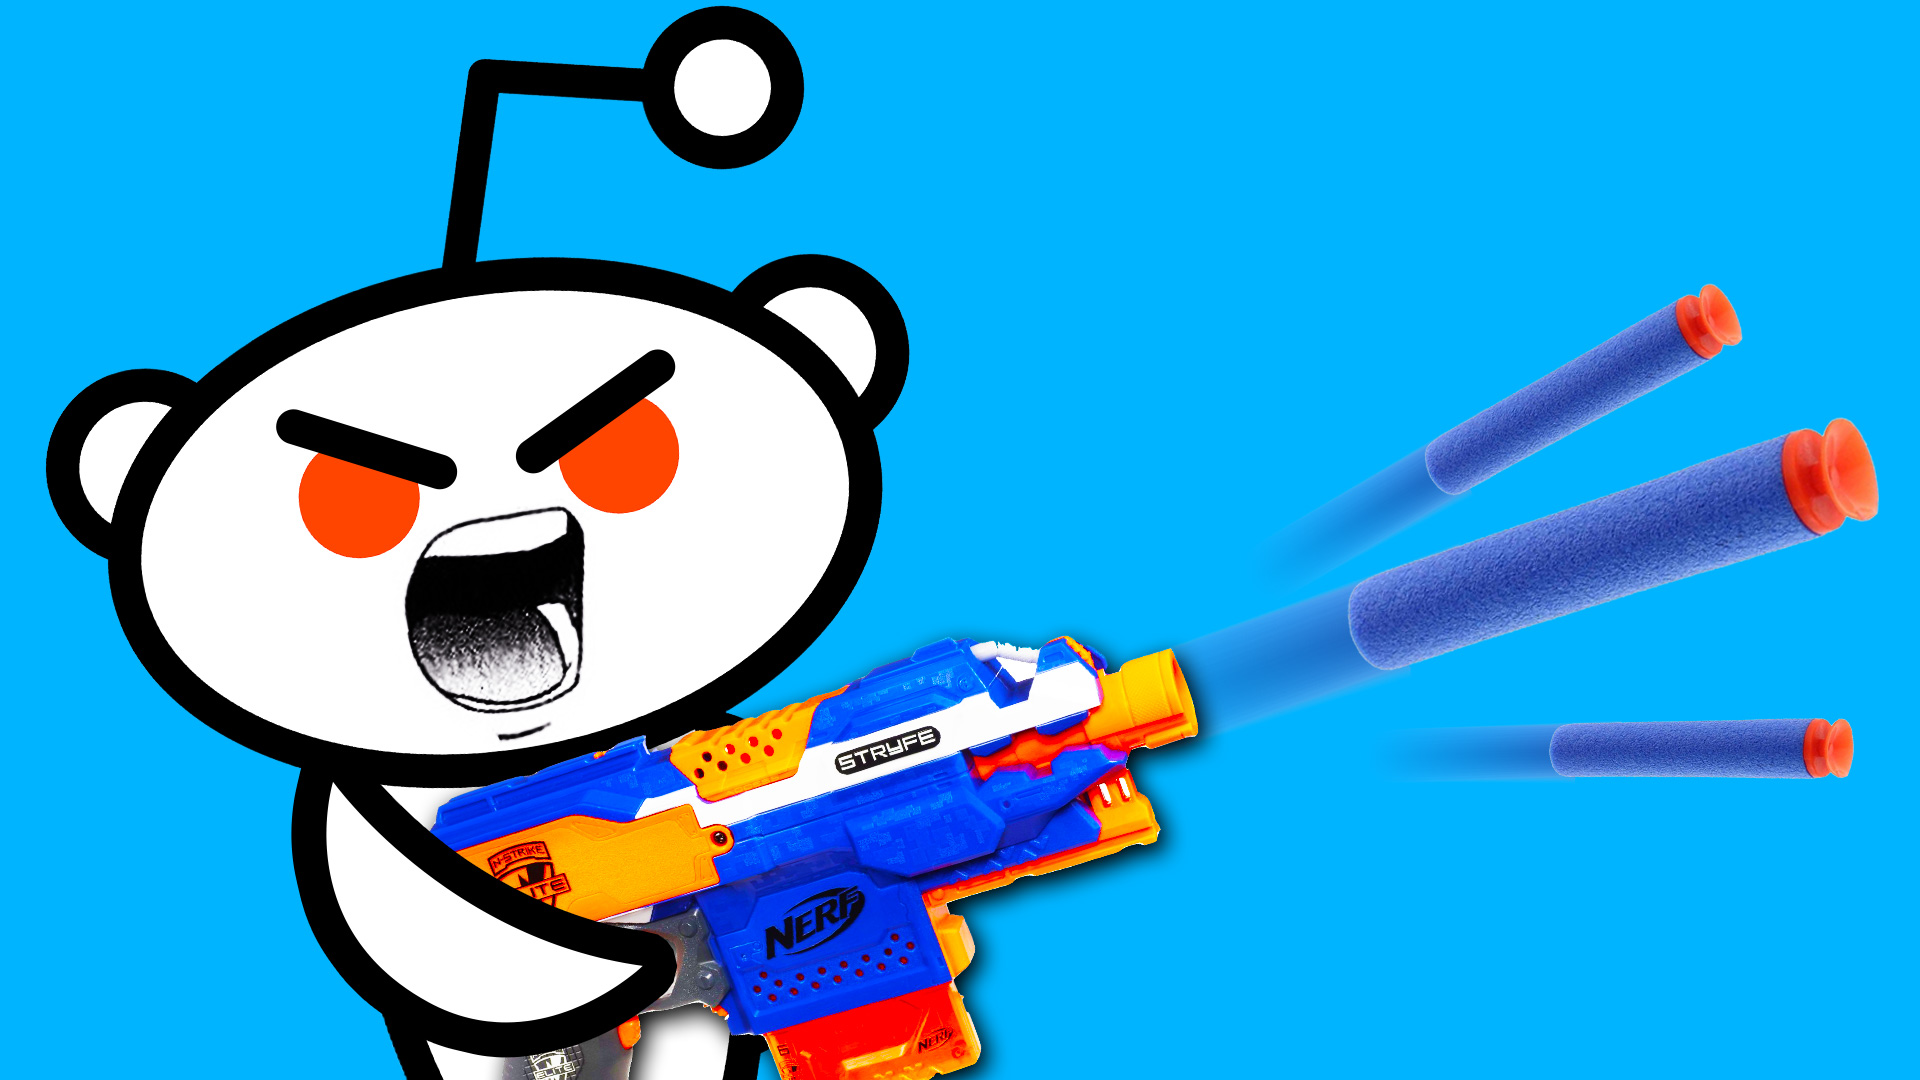 The Top 20 Nerf Blasters According to /r/Nerf on Reddit! | BabbleTop